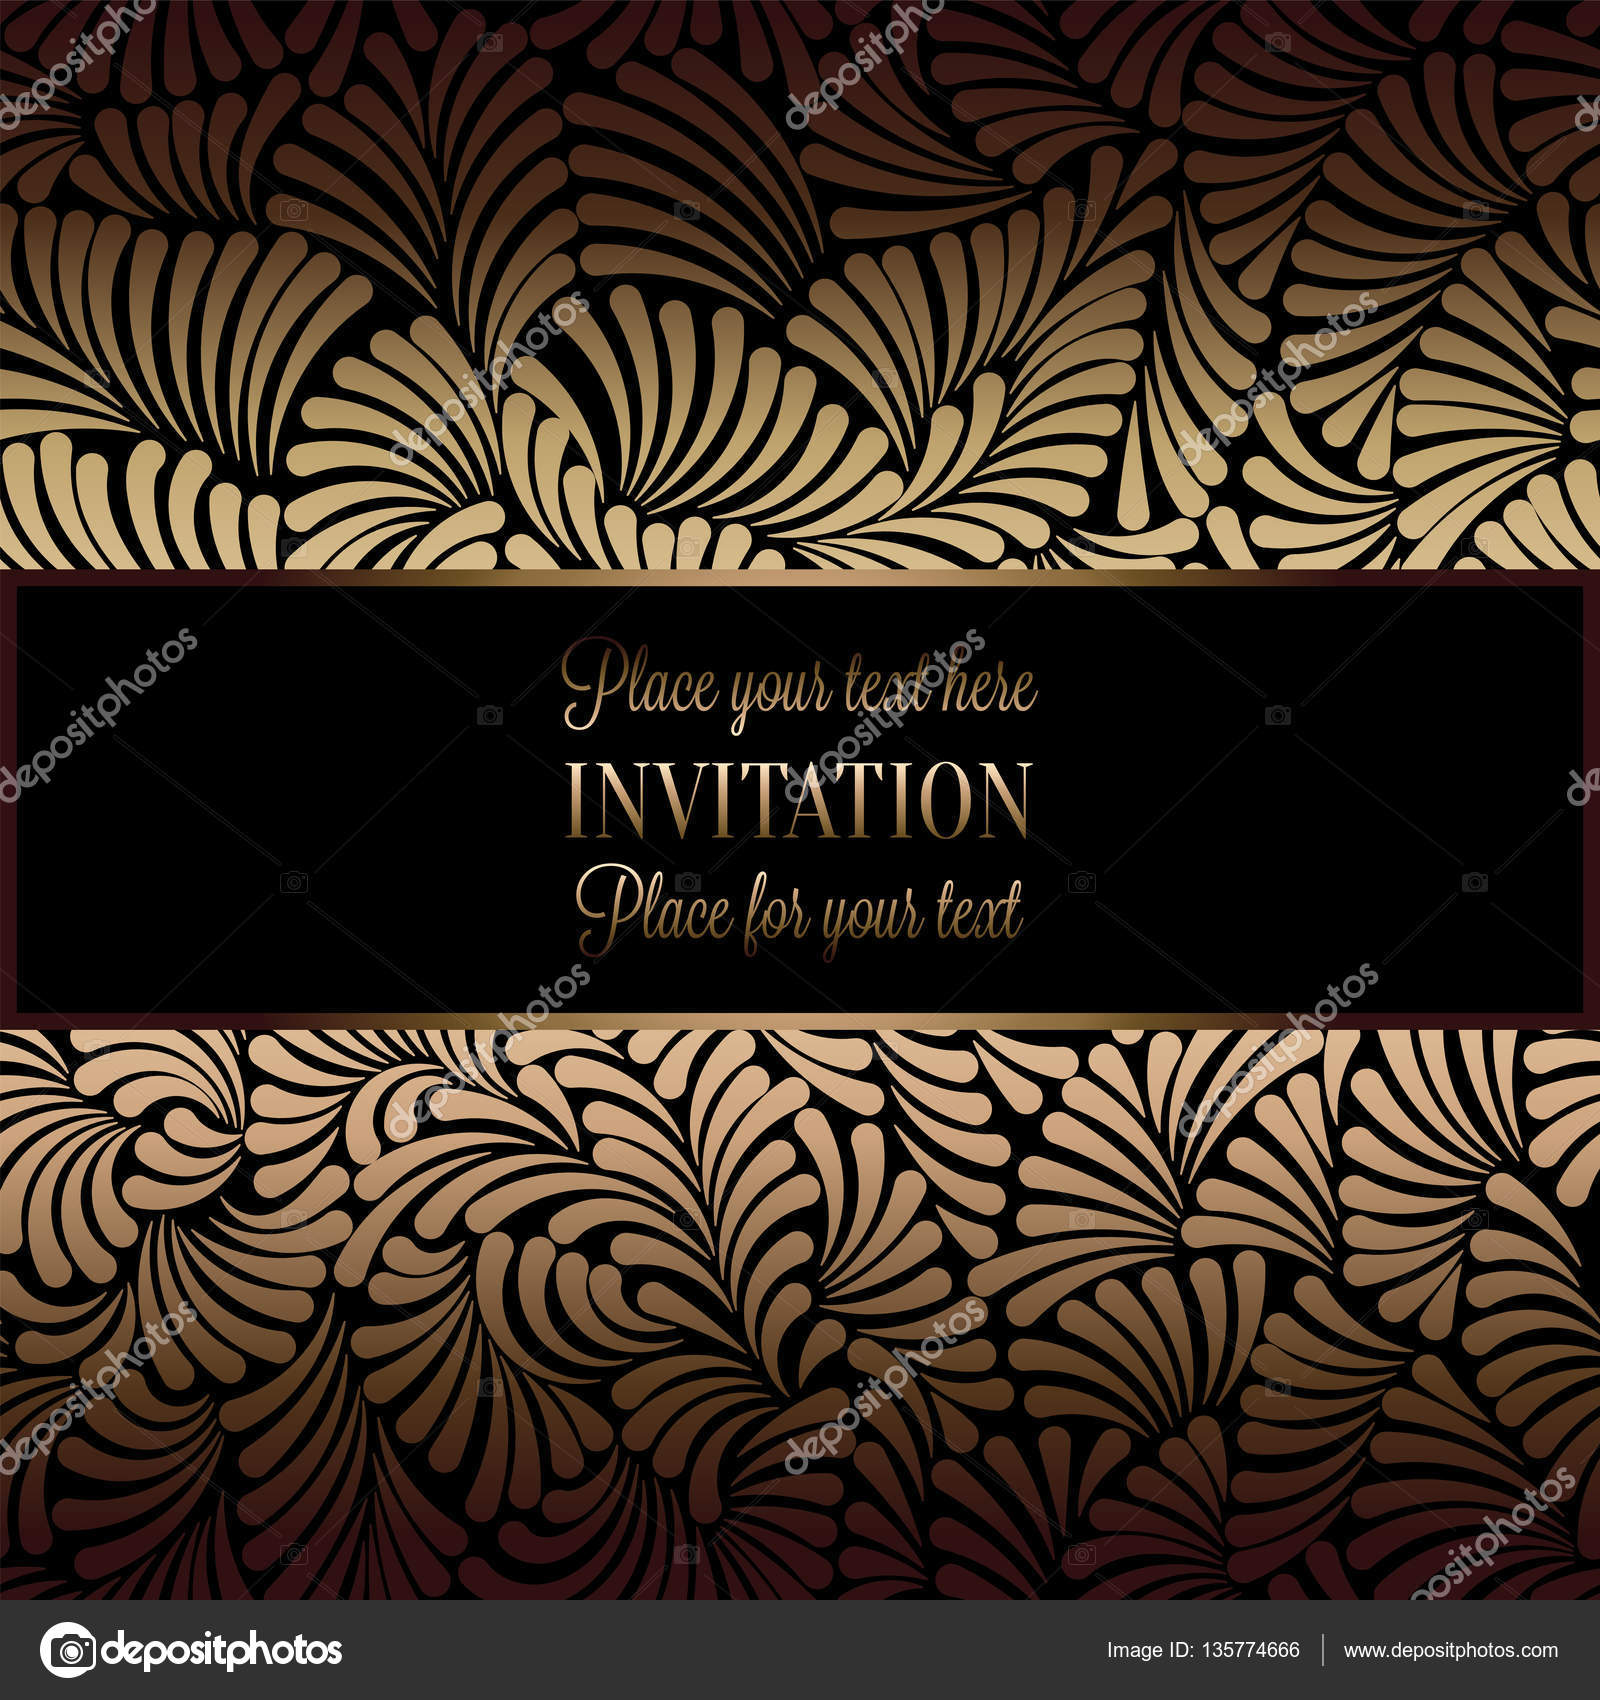 Abstract Background With Antique Luxury Black And Gold